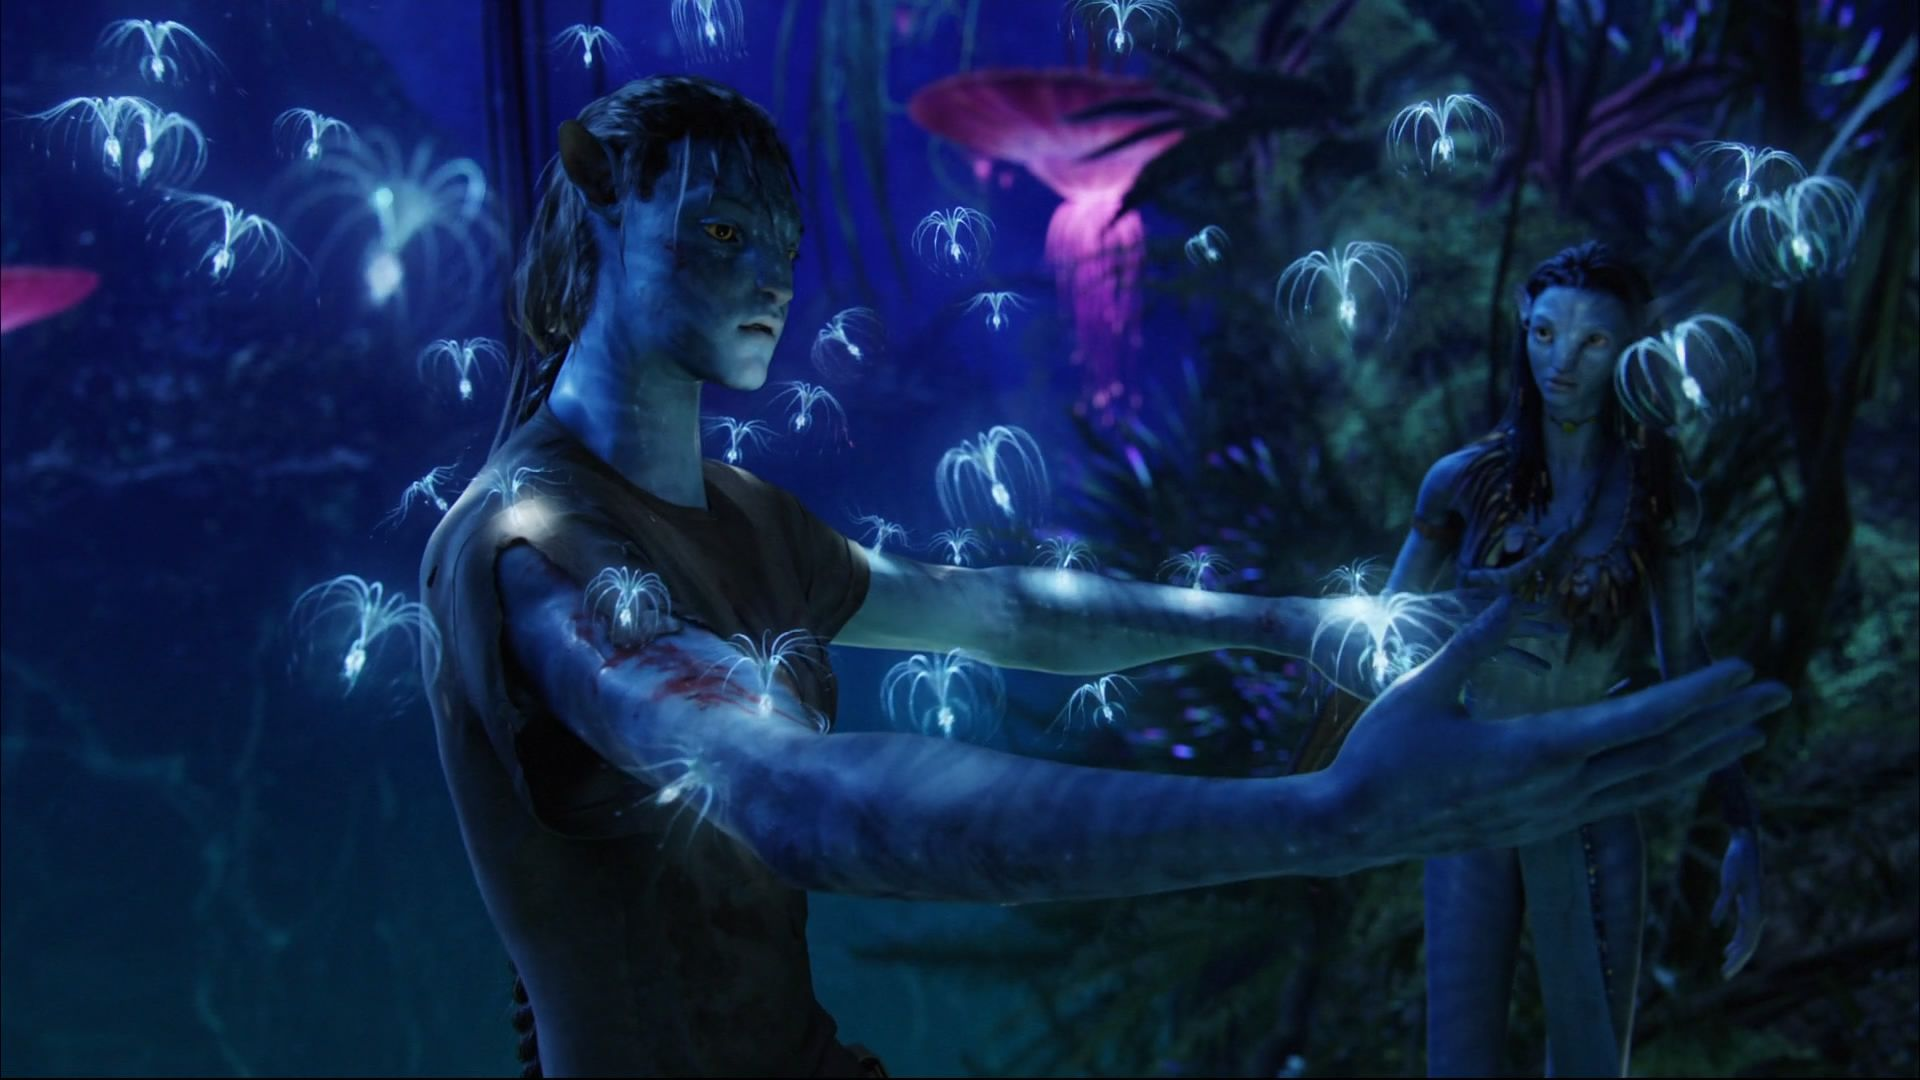 243 Avatar Hd Wallpapers Backgrounds Wallpaper Abyss Avatar Movie Avatar Picture Avatar